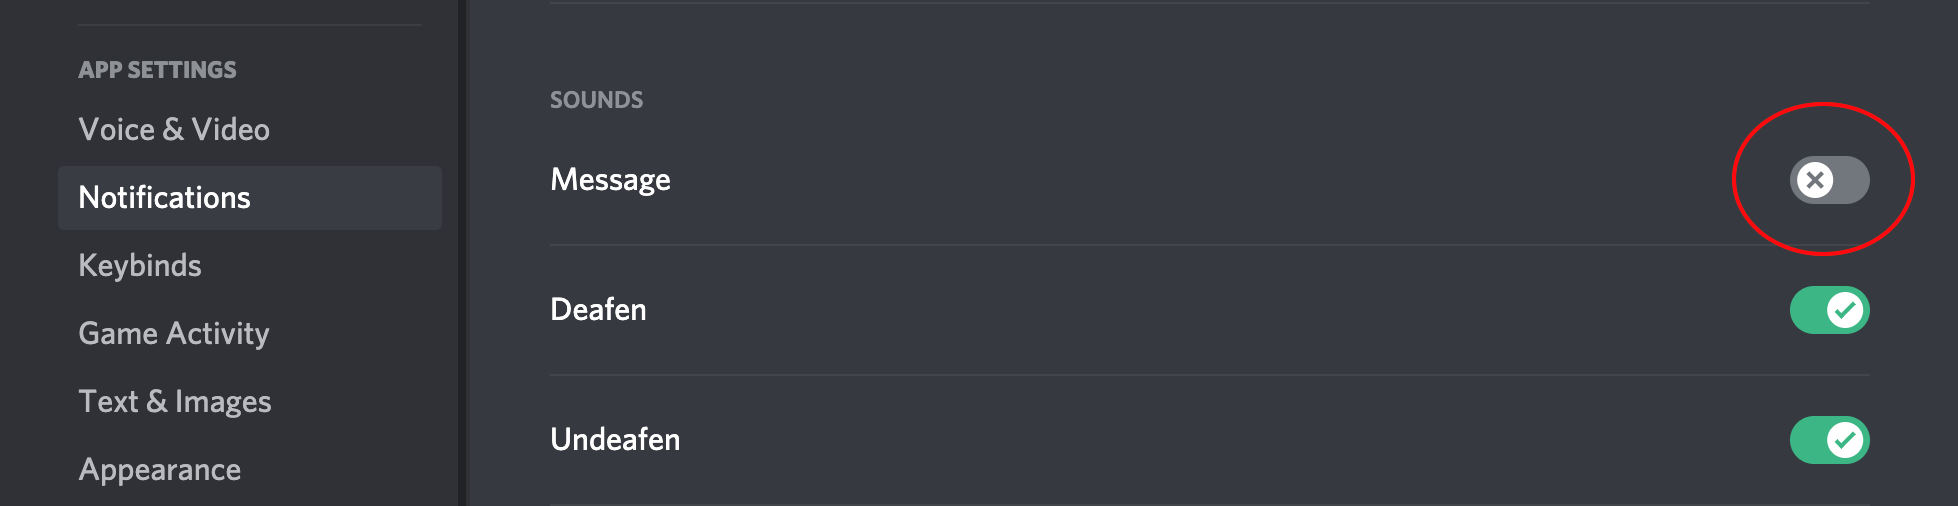 turn-off-message-noise-discord.png